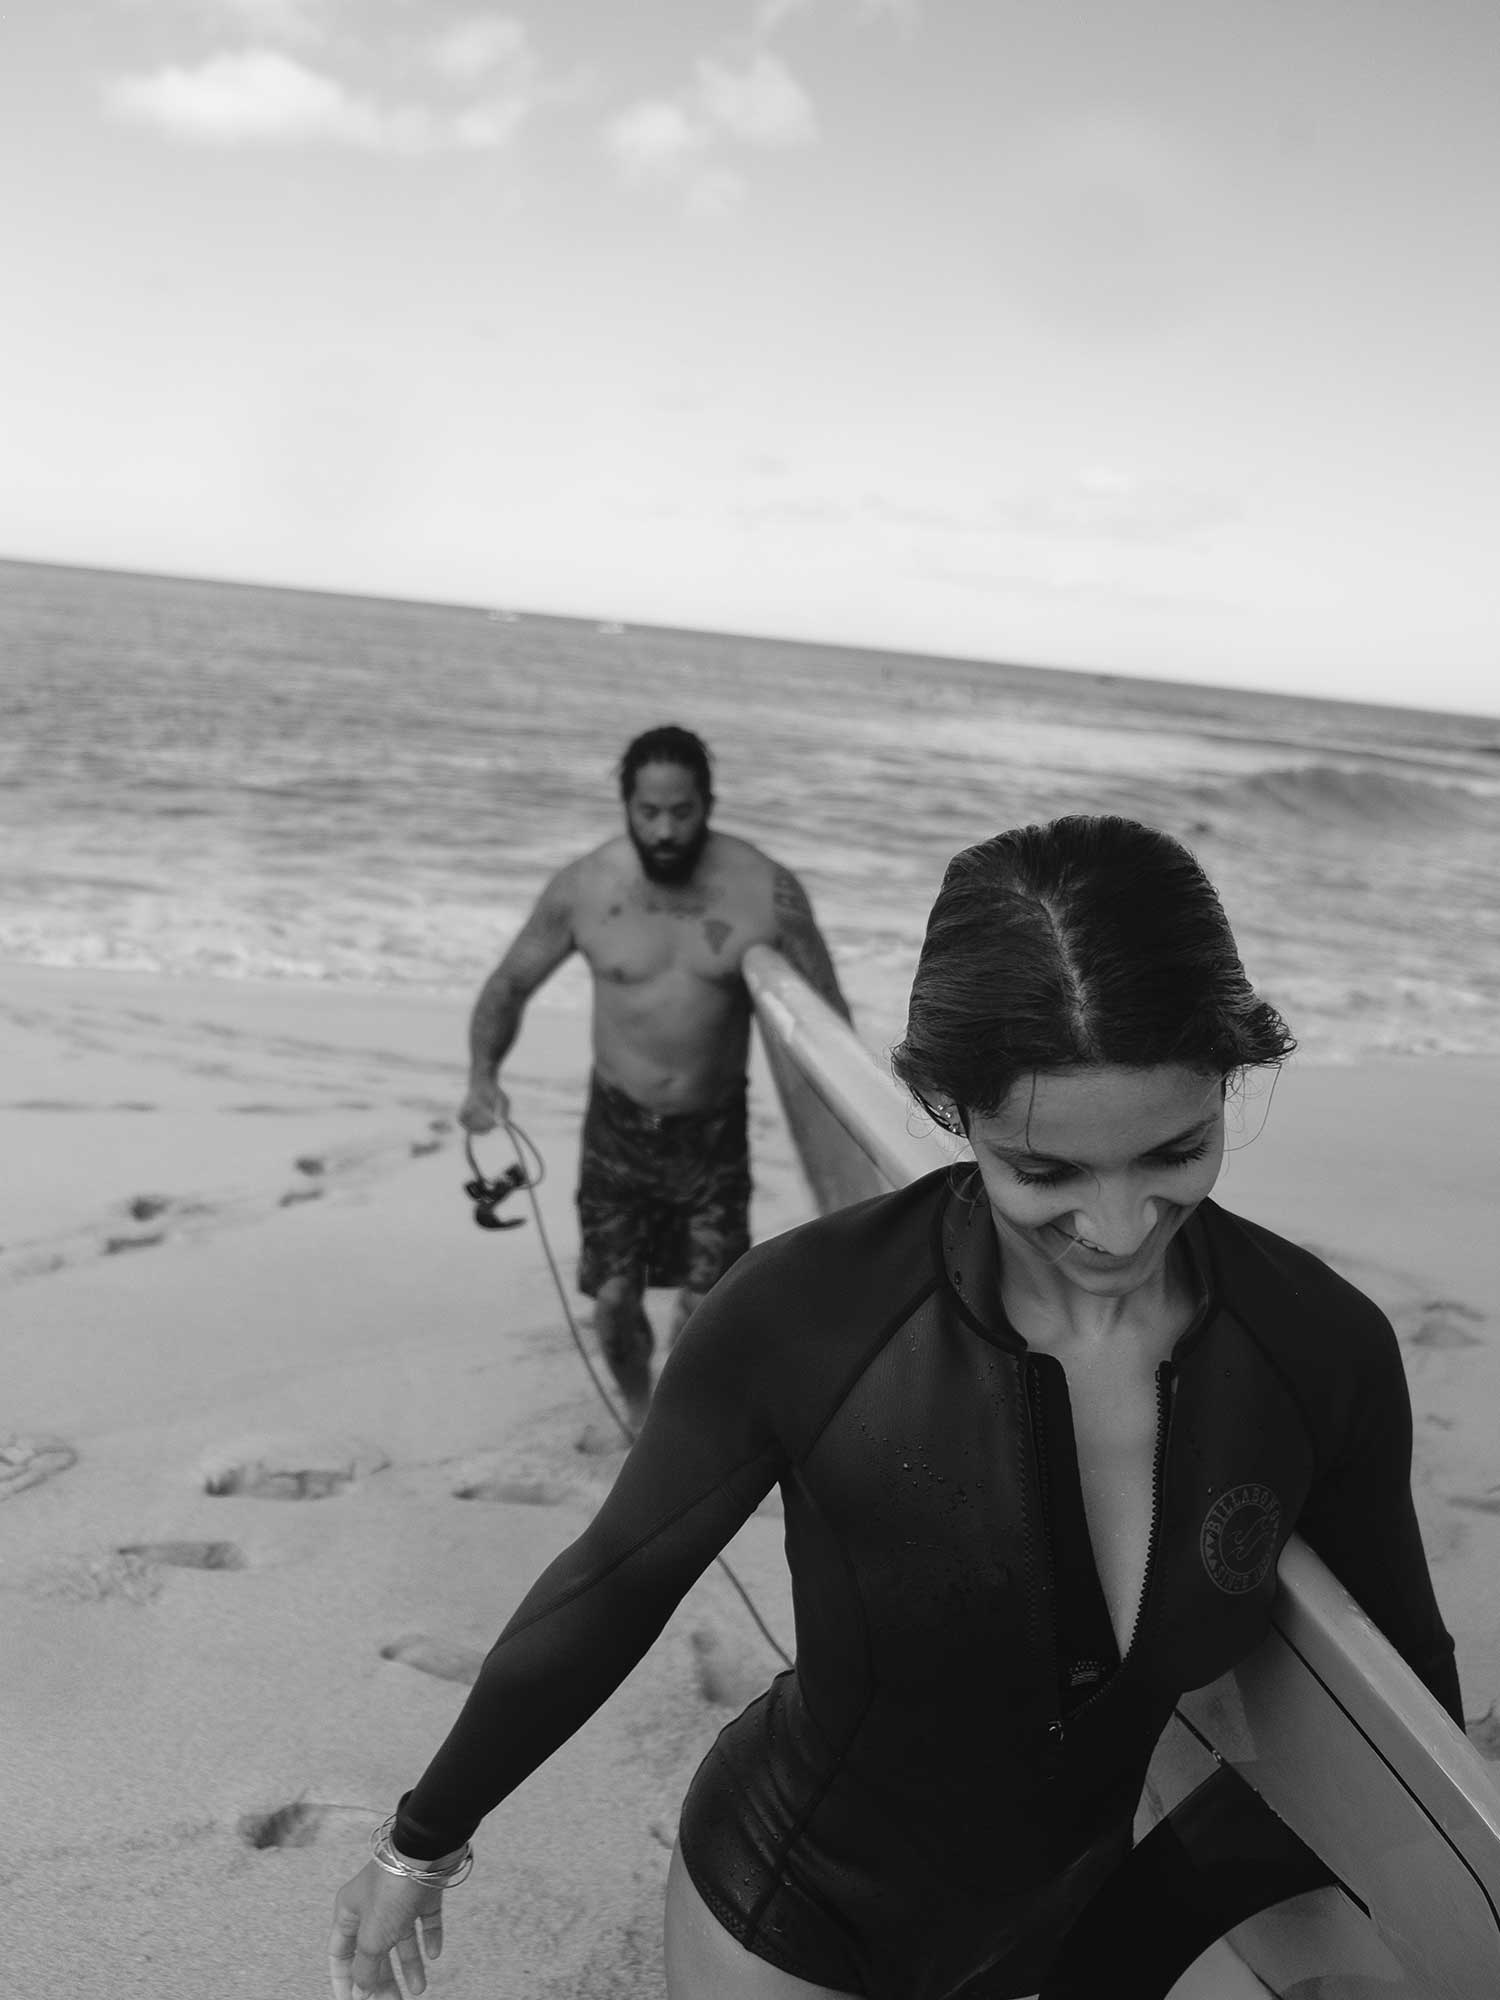 Jordan and Keala walking back to shore with their surfboard